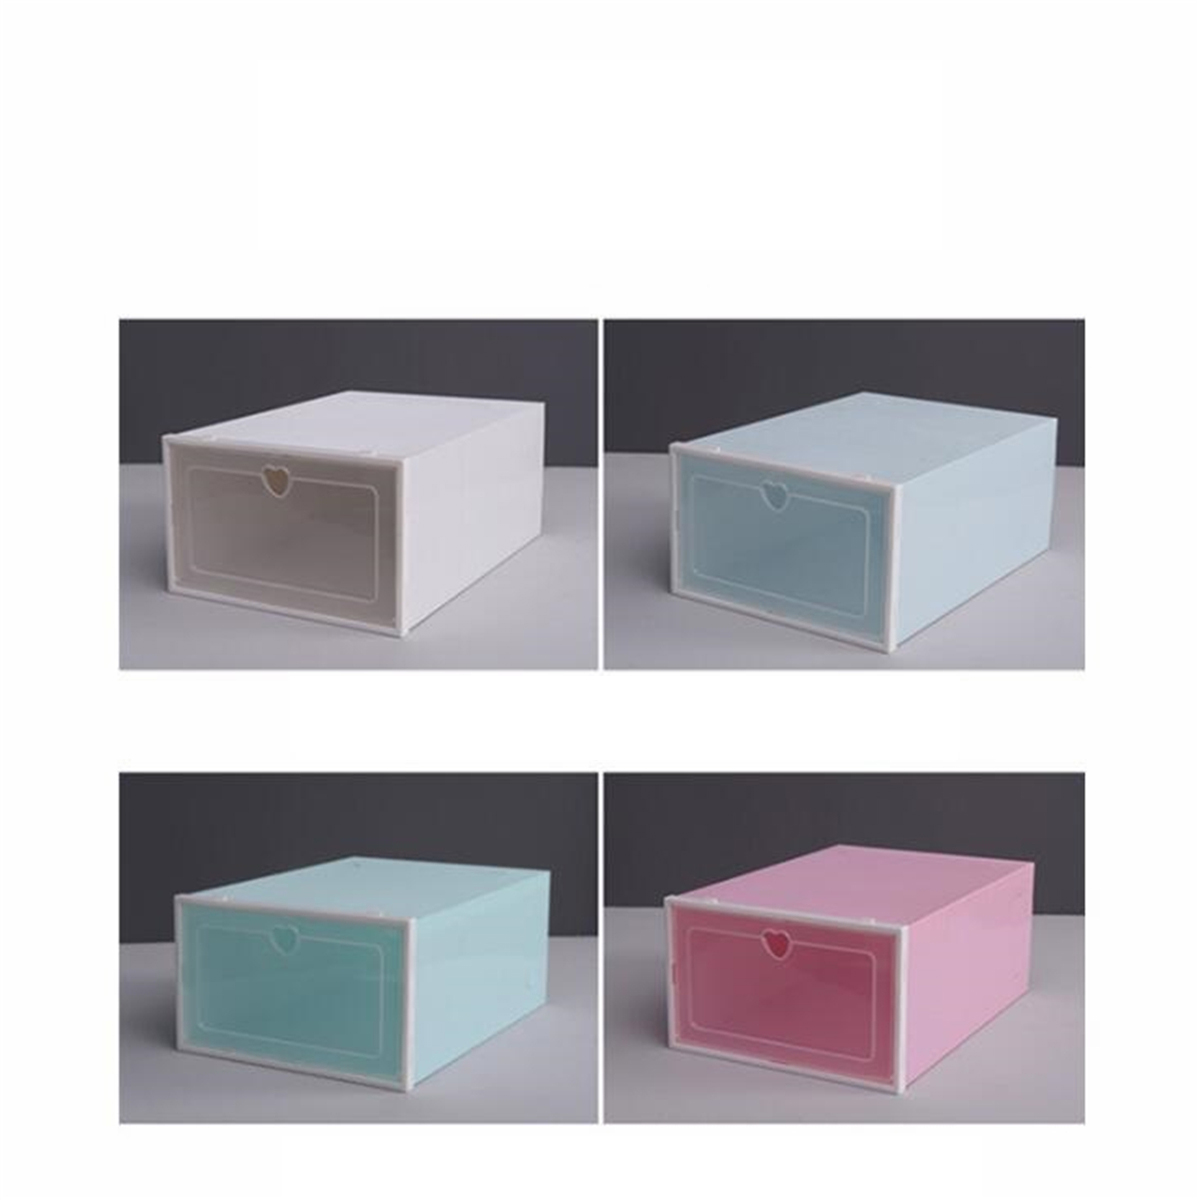 Foldable Clear Plastic Shoe Boxes Storage Organizer Stackable Tidy Box Baskets